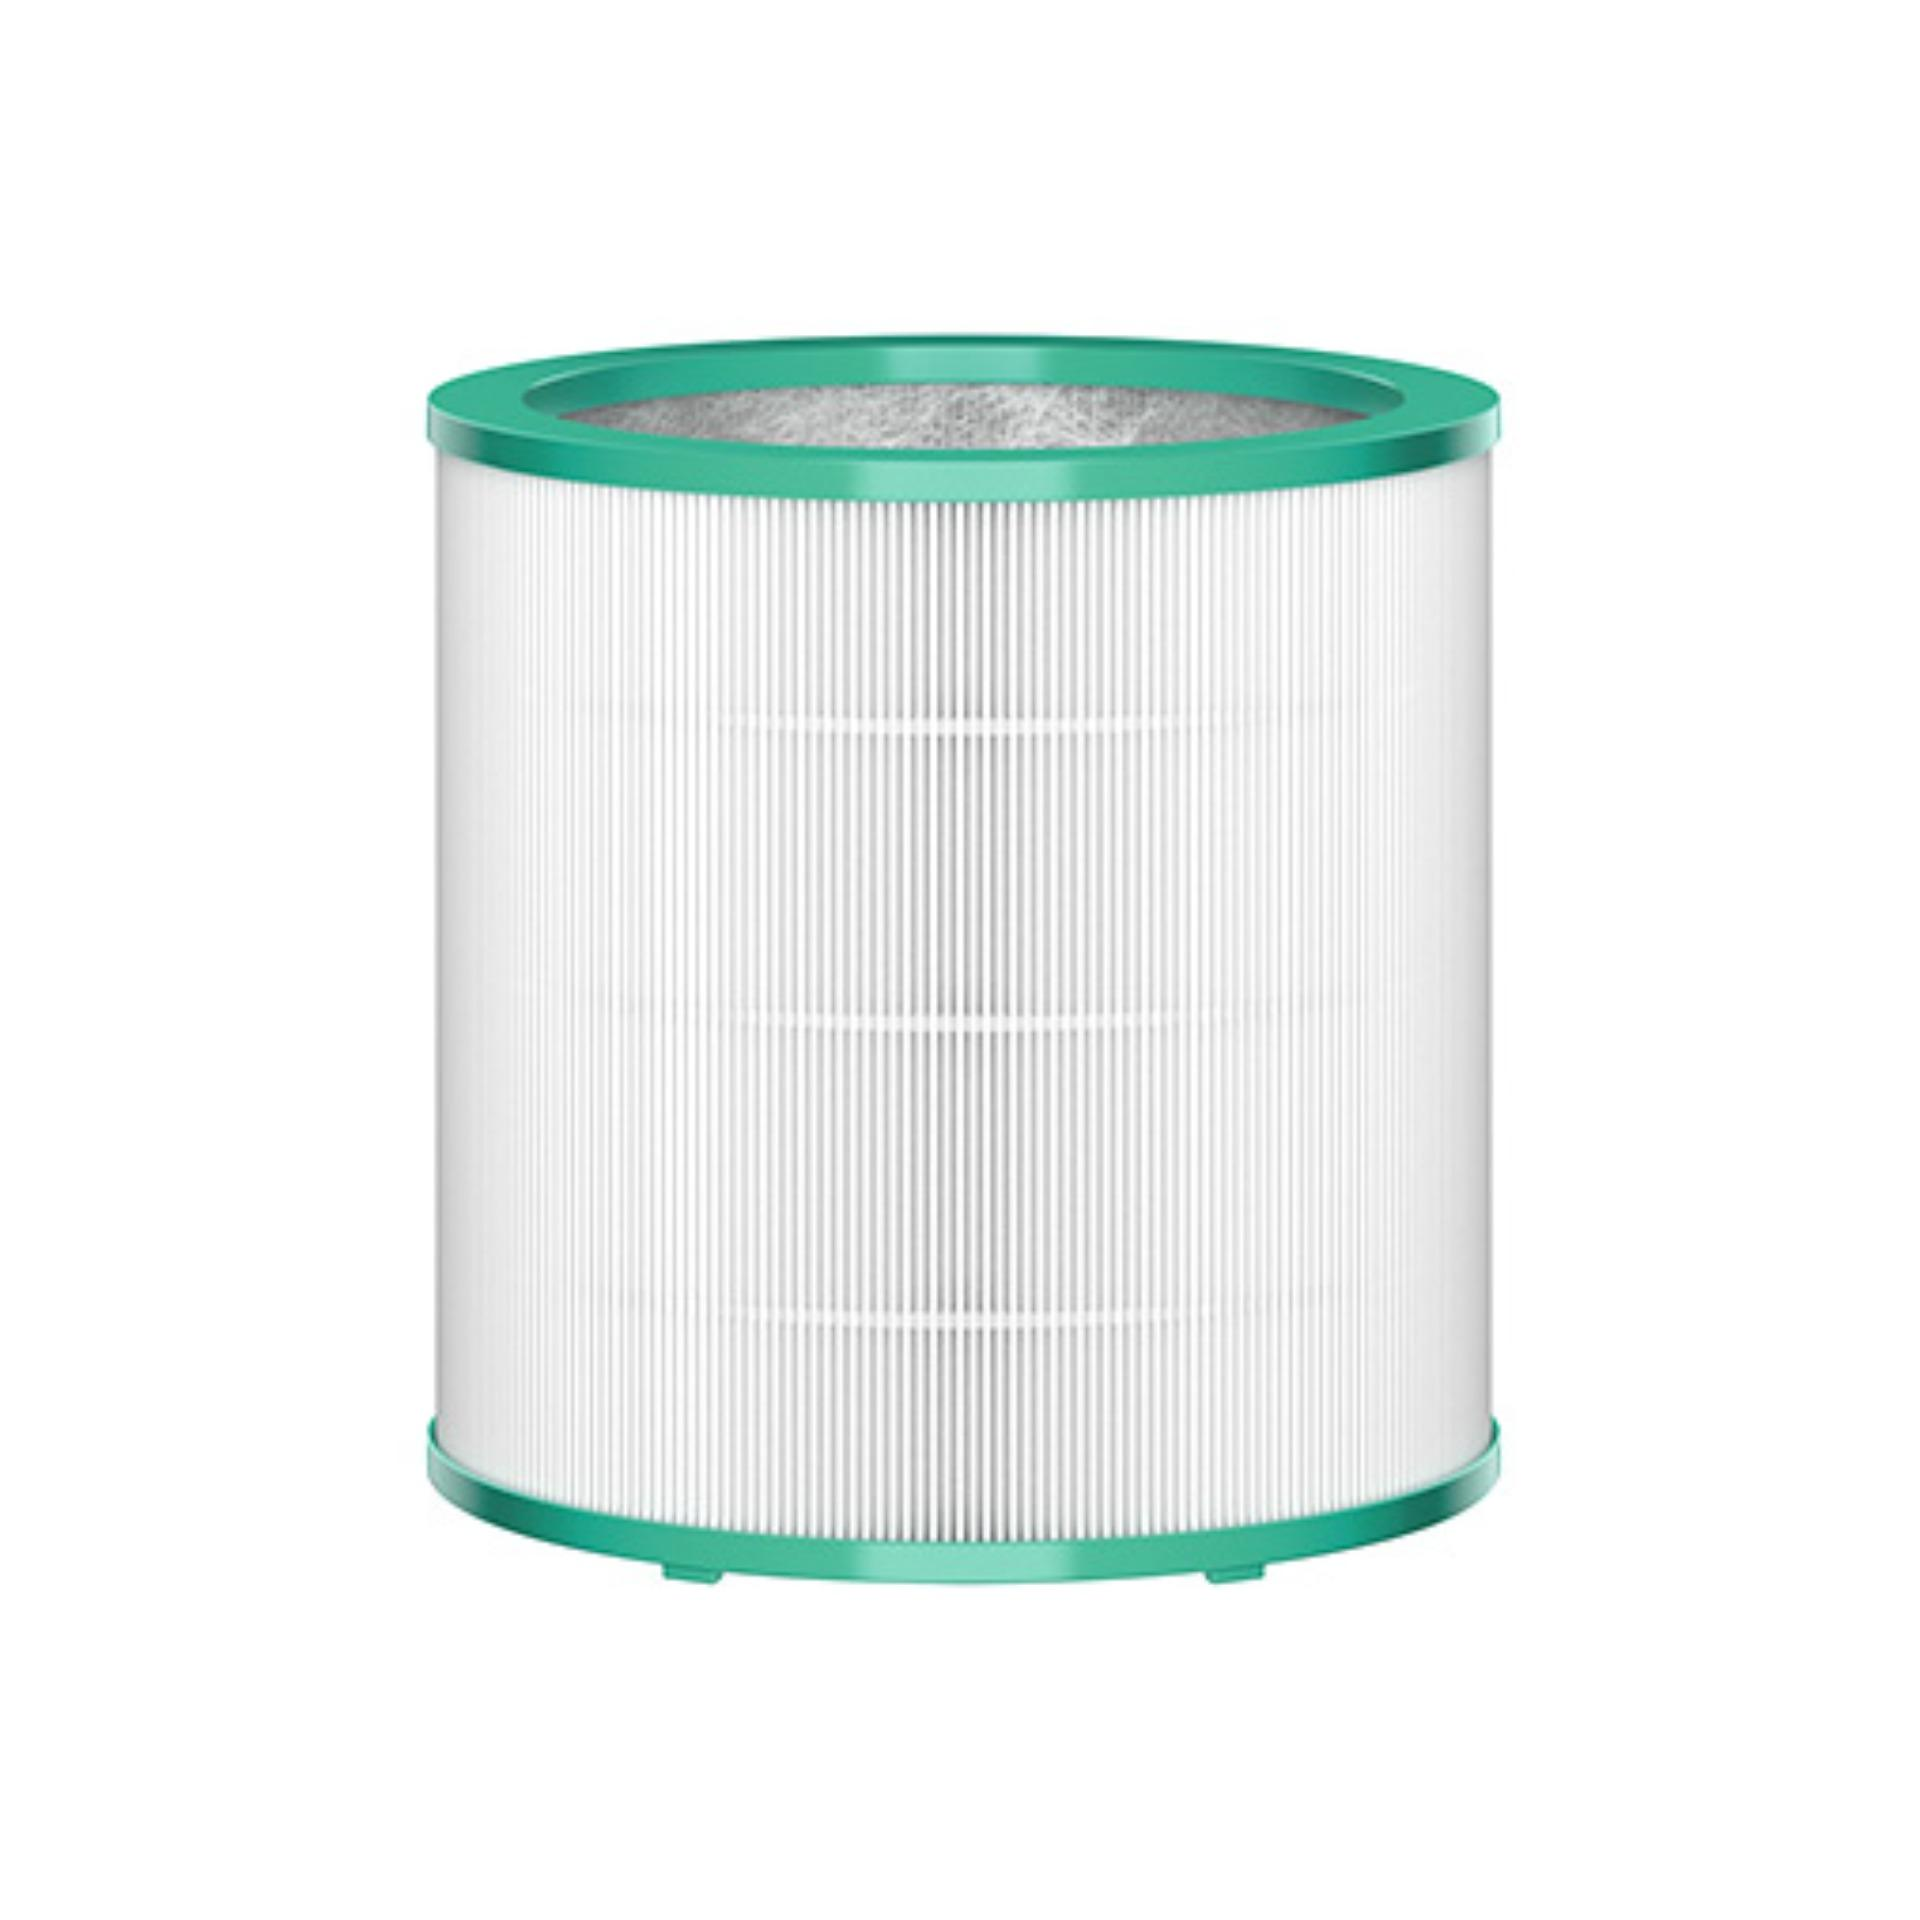 Discounted Dyson Tp03 Filter And Am 11 Filter Dual Layer Gen 2